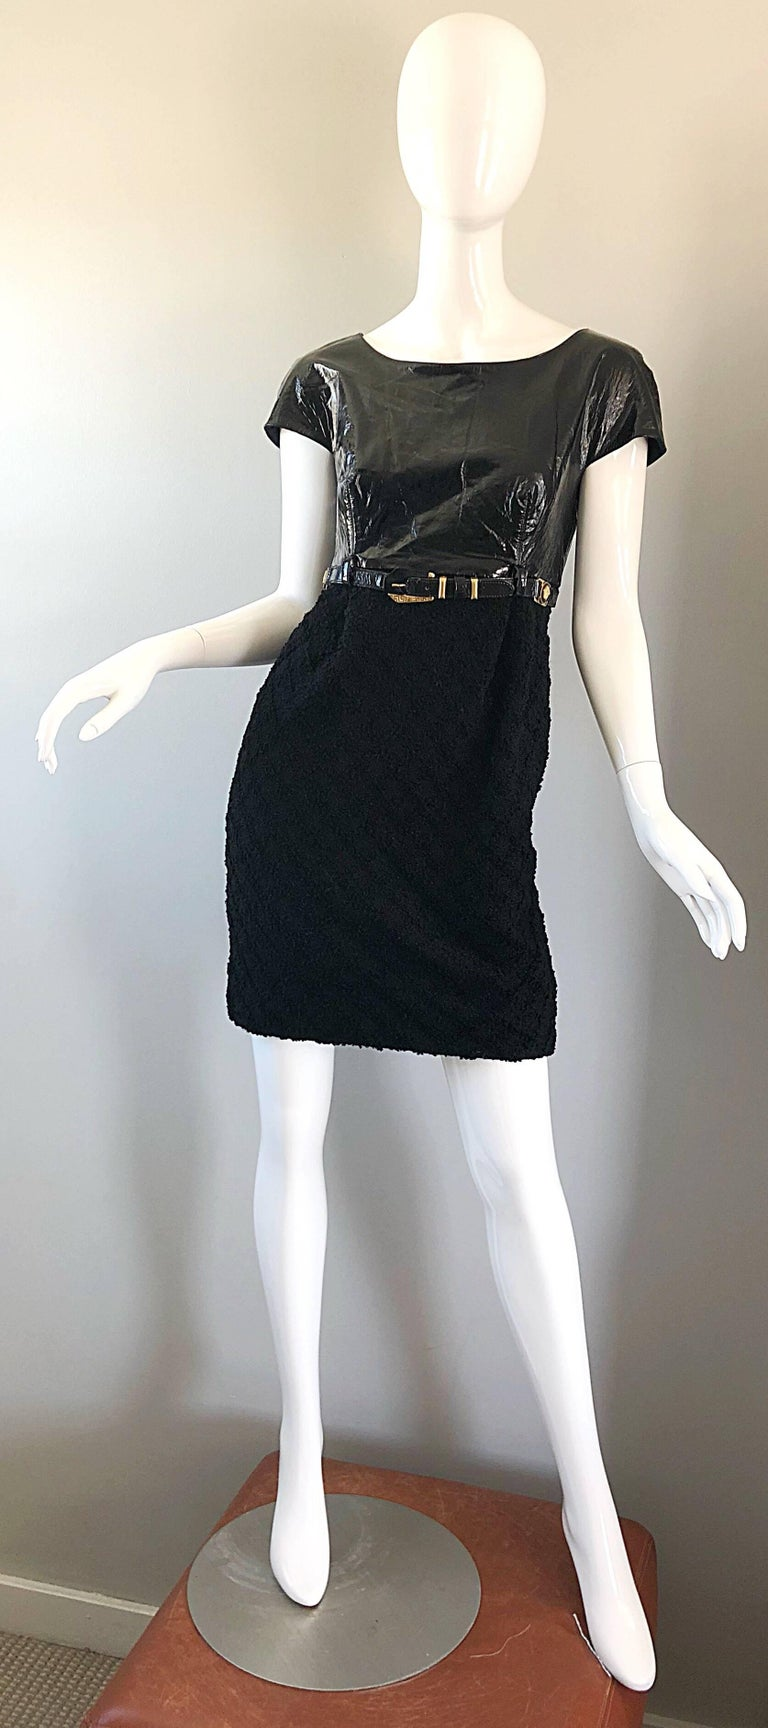 Documented Gianni Versace Couture Vintage F/W 1994 Black PVC Wool 90s Dress For Sale 9